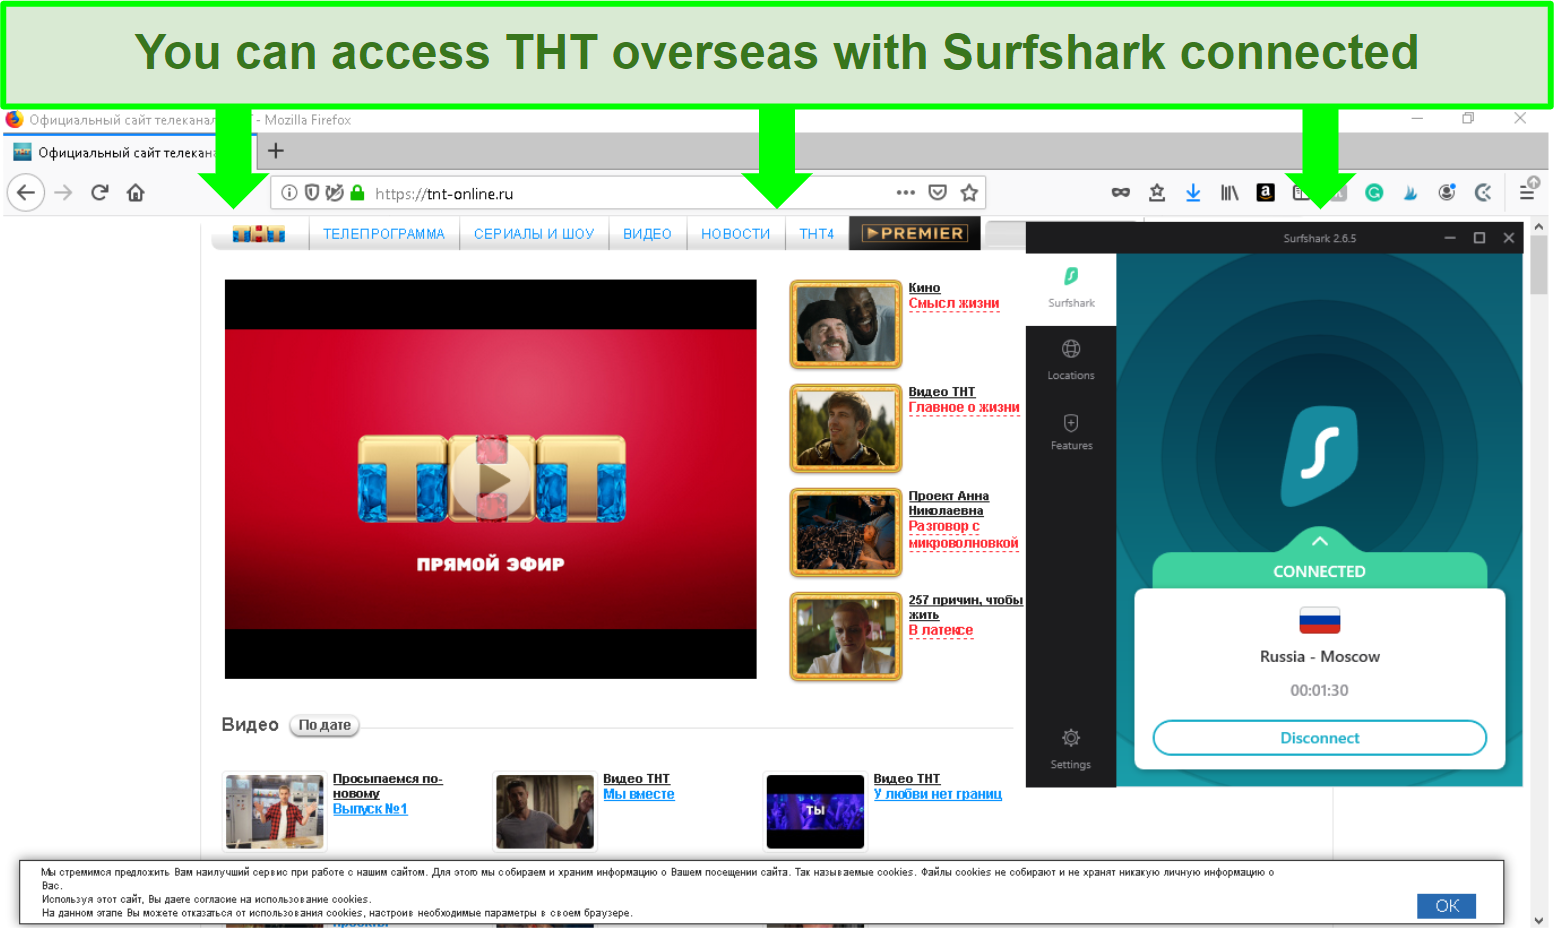 Graphic highlighting Surfsharks ability to access Russian streaming website THT